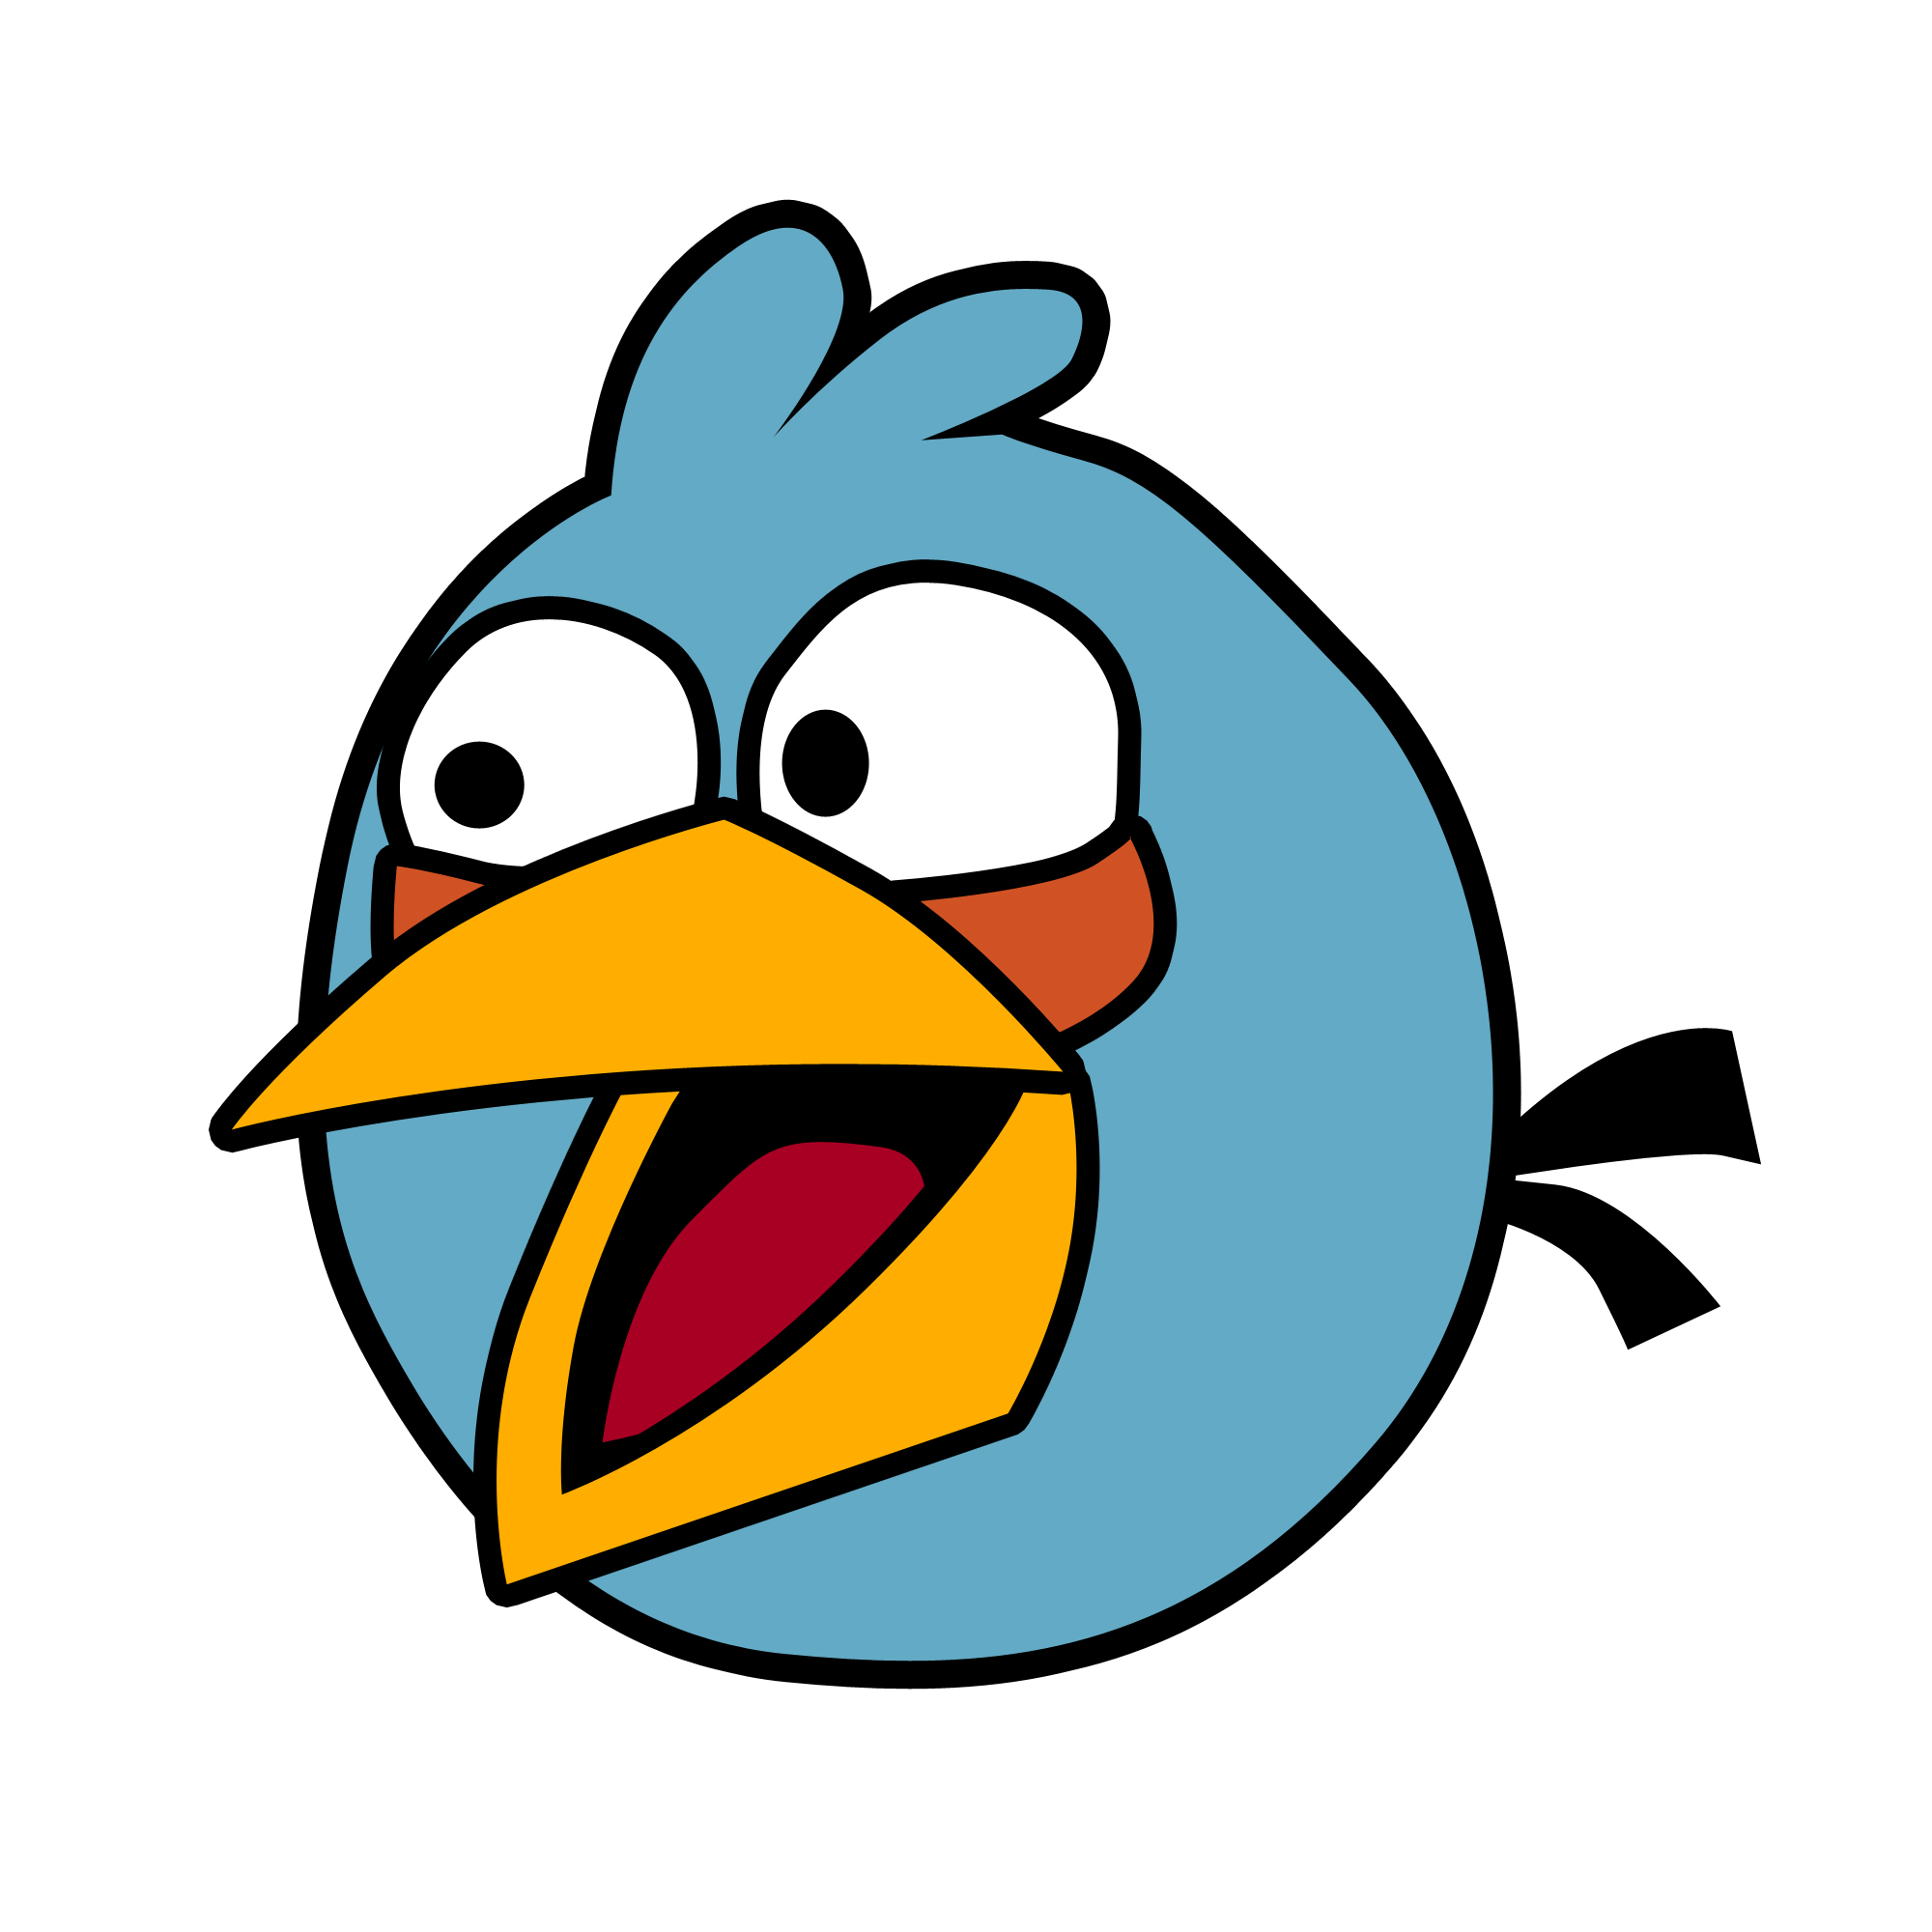 1000+ images about Angry bird birthday on Pinterest | Kids ...